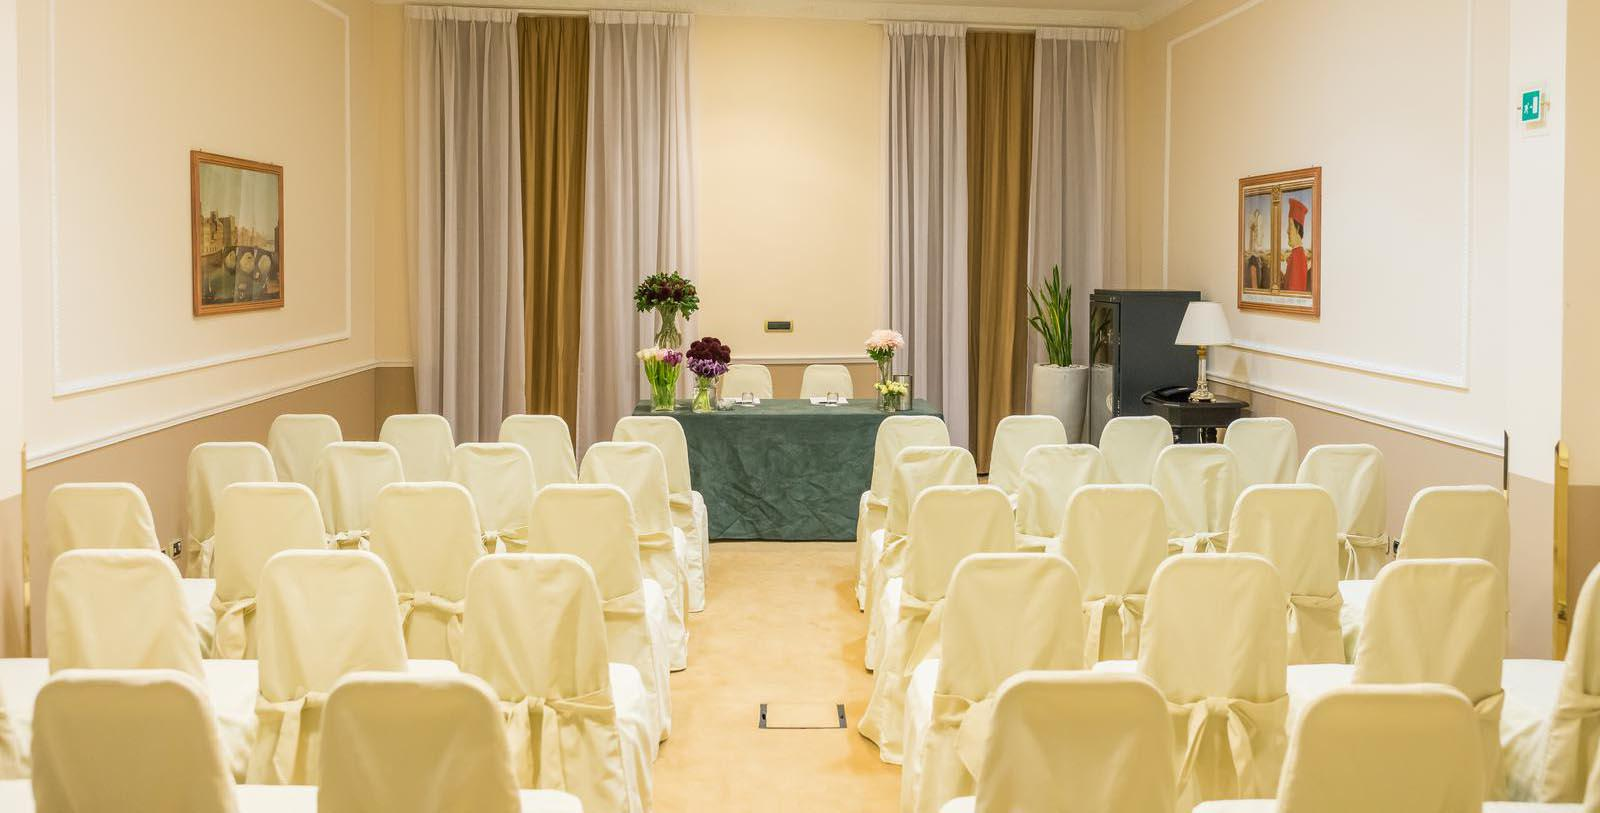 Image of classroom set up meeting room Bernini Palace Hotel, 1500, Member of Historic Hotels Worldwide, in Florence, Italy, Special Occasions